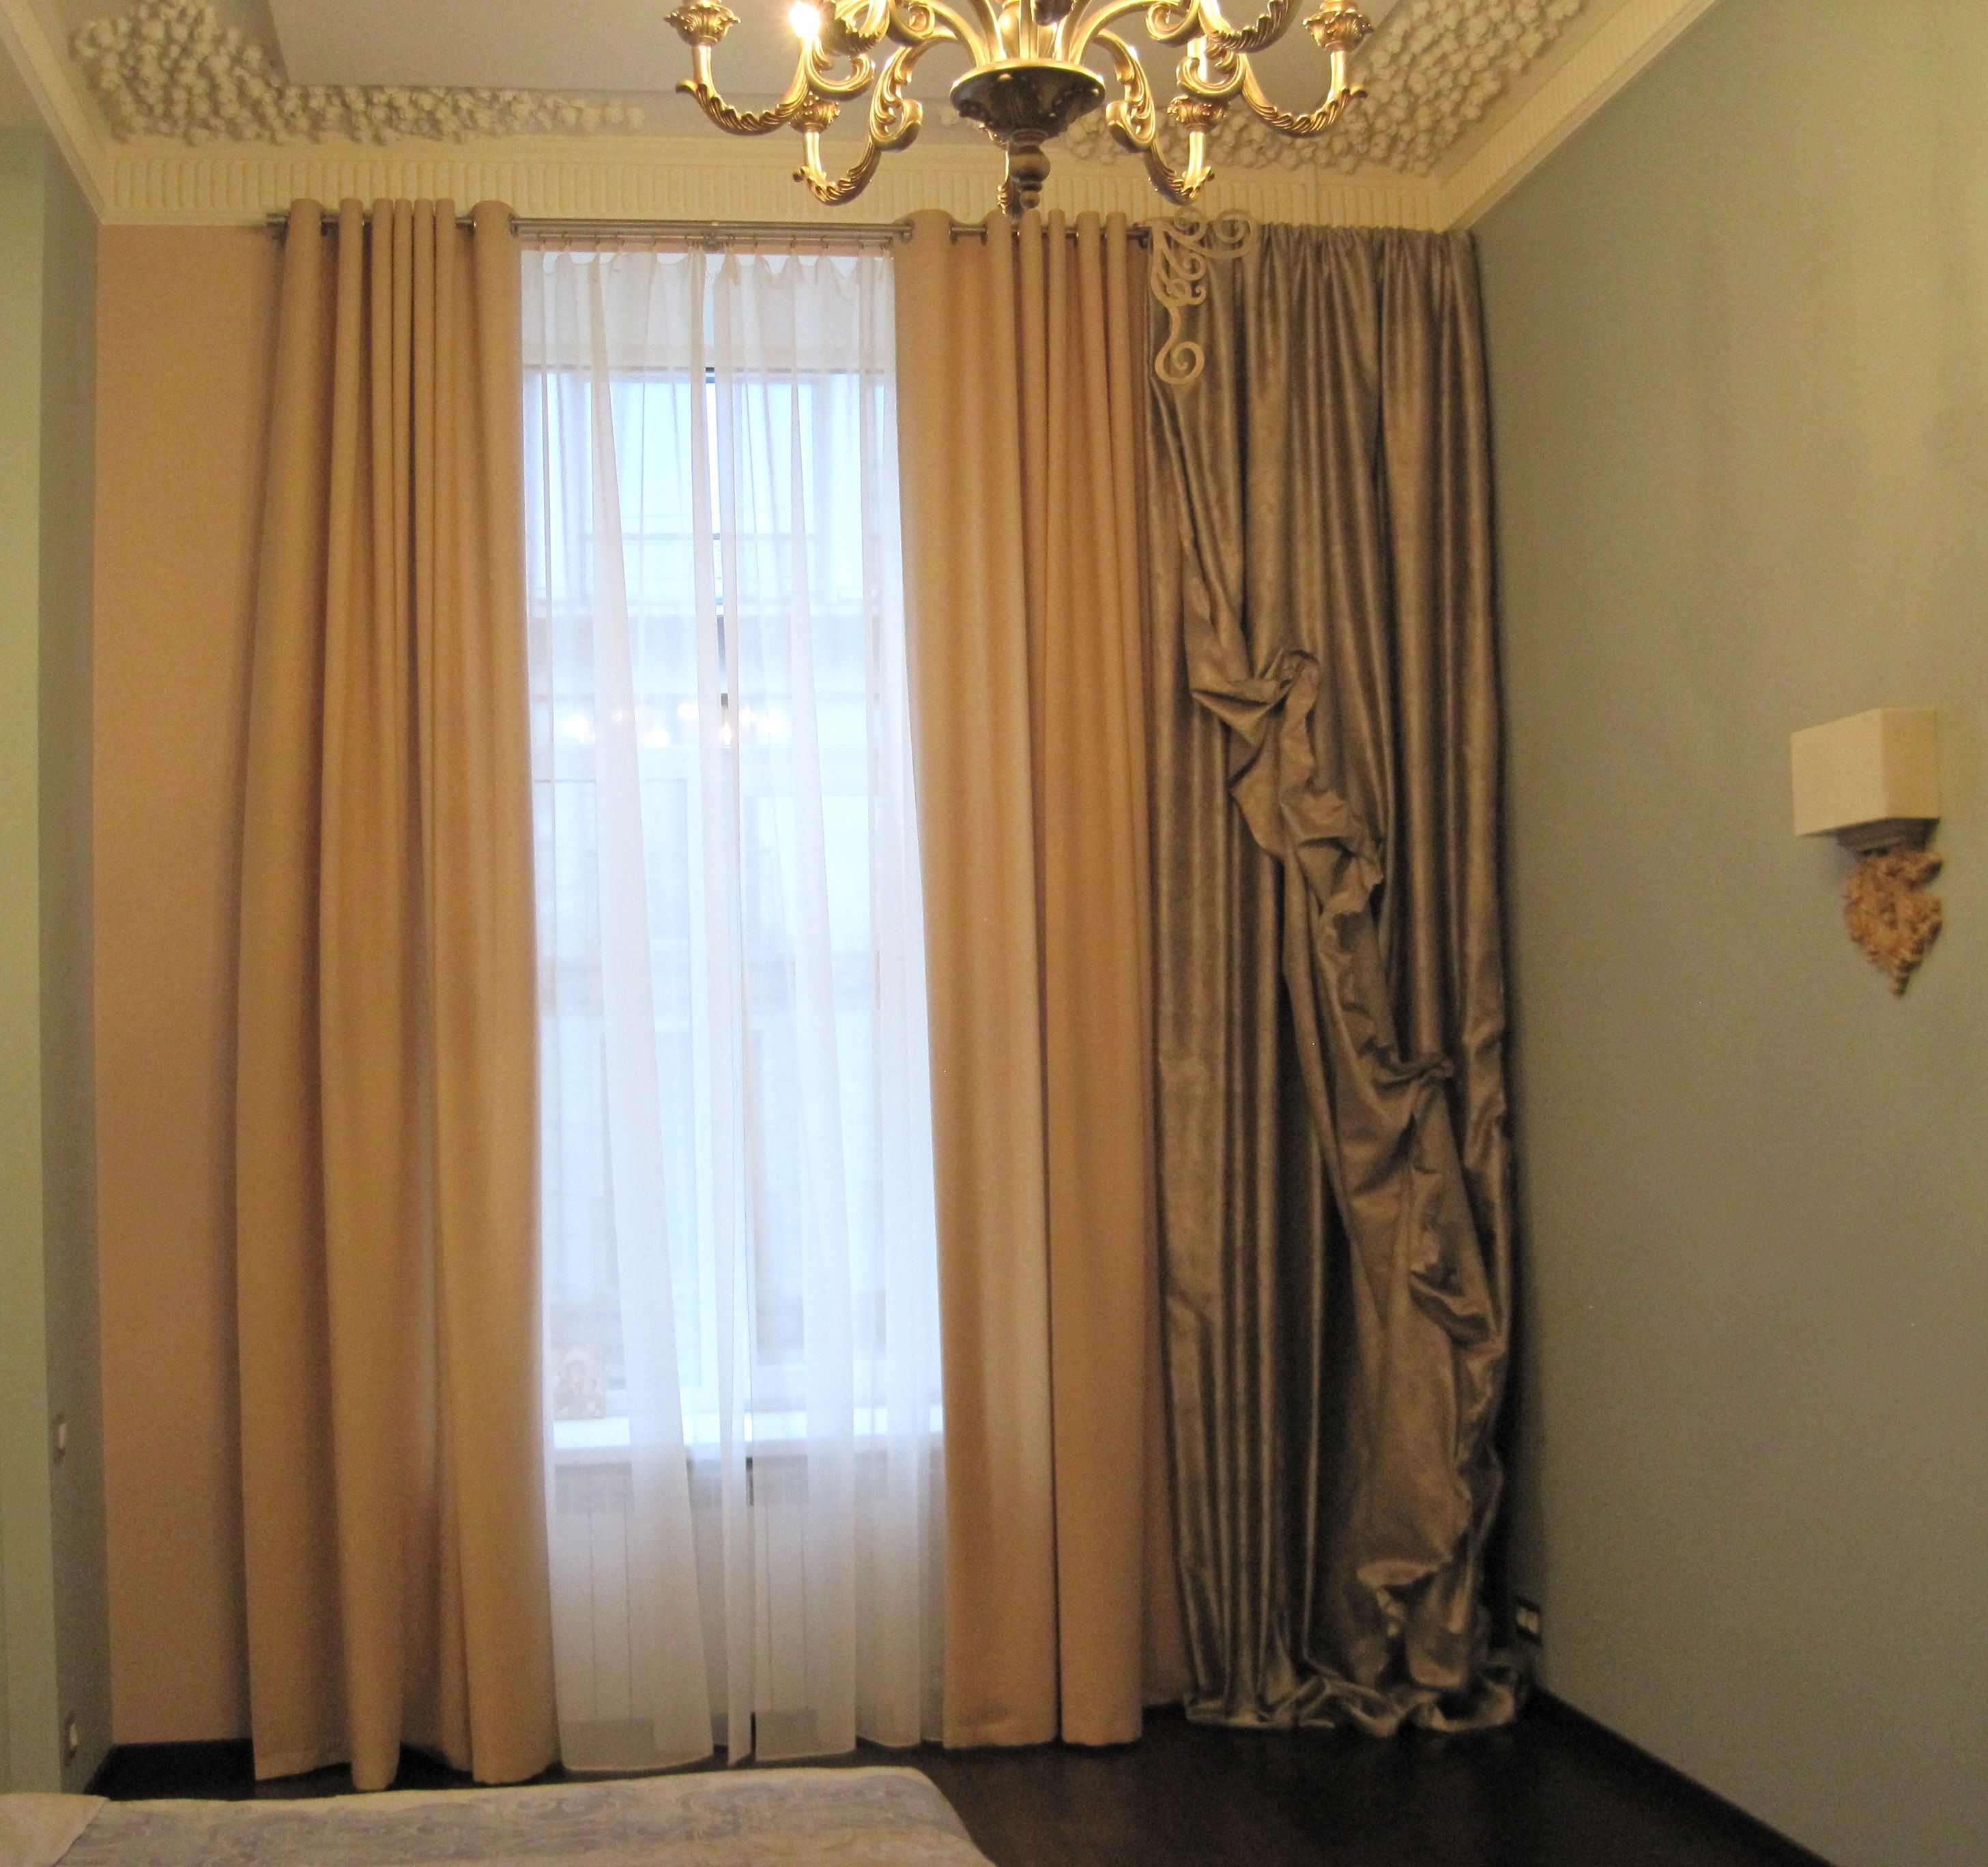 coverings bedroom best for moderns curtains design cool curtain ideas master unbelievable bedrooms modern window style